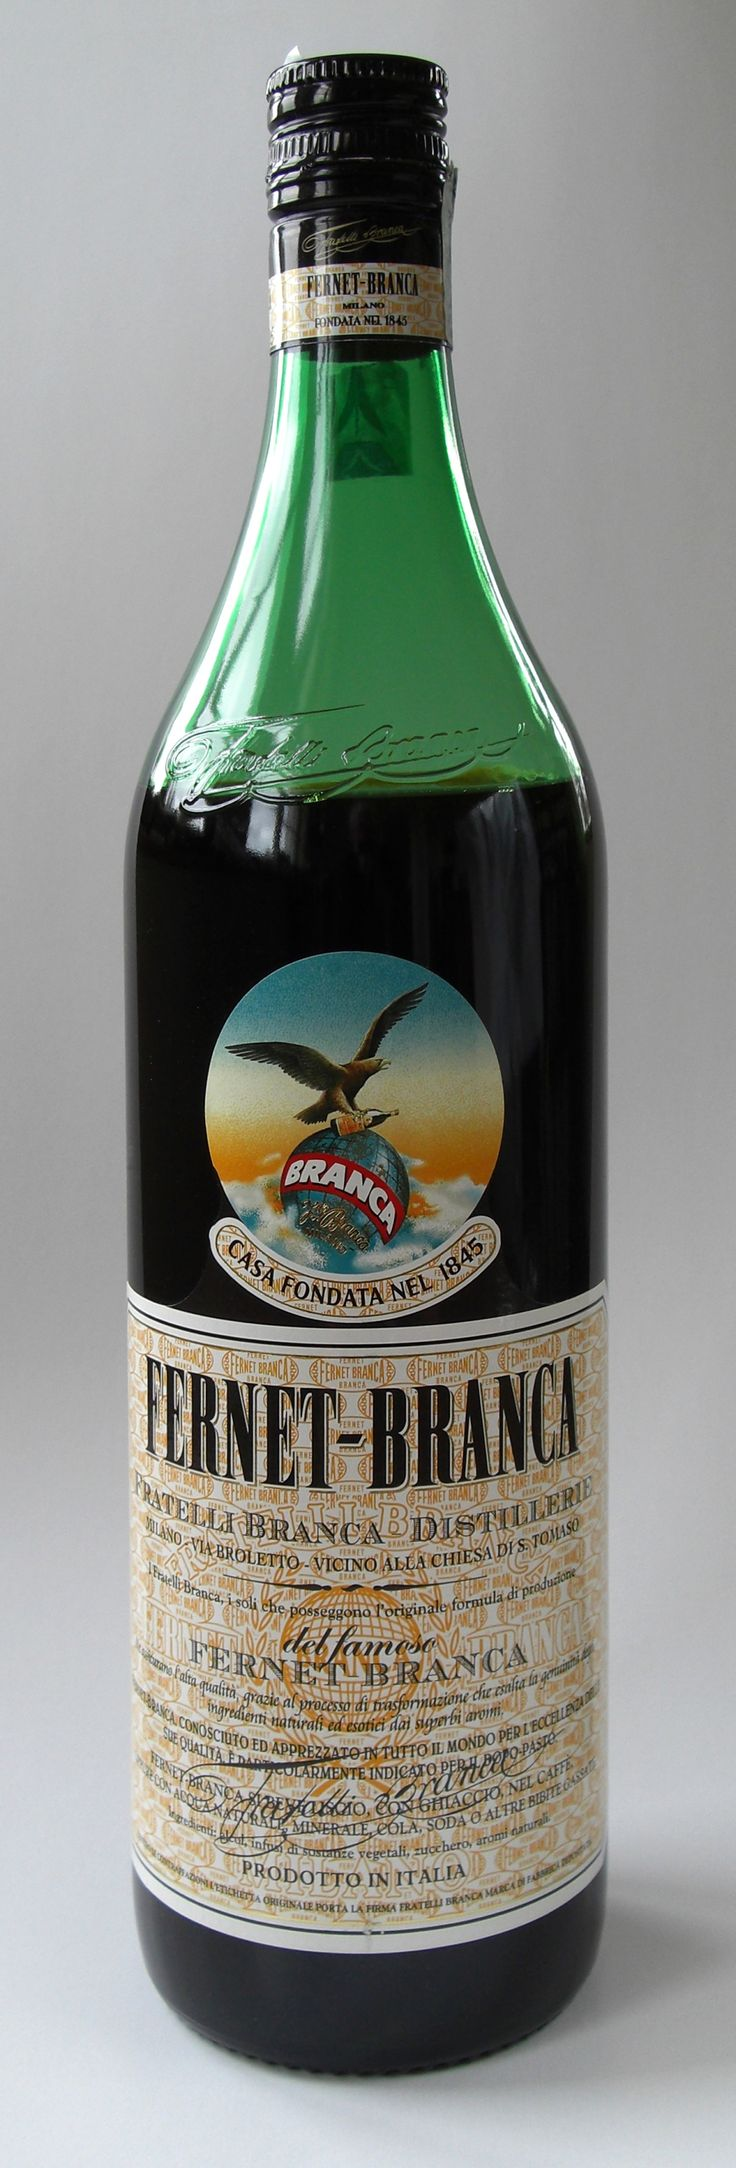 Fernet - Branca  Fernet is usually served as a digestif after a meal but may also be served with coffee and espresso or mixed into coffee and espresso drinks. In Argentina it is commonly mixed with Coca Cola. It typically contains 45% alcohol by volume. It may be served at room temperature or on the rocks (with ice) source http://en.wikipedia.org/wiki/Fernet